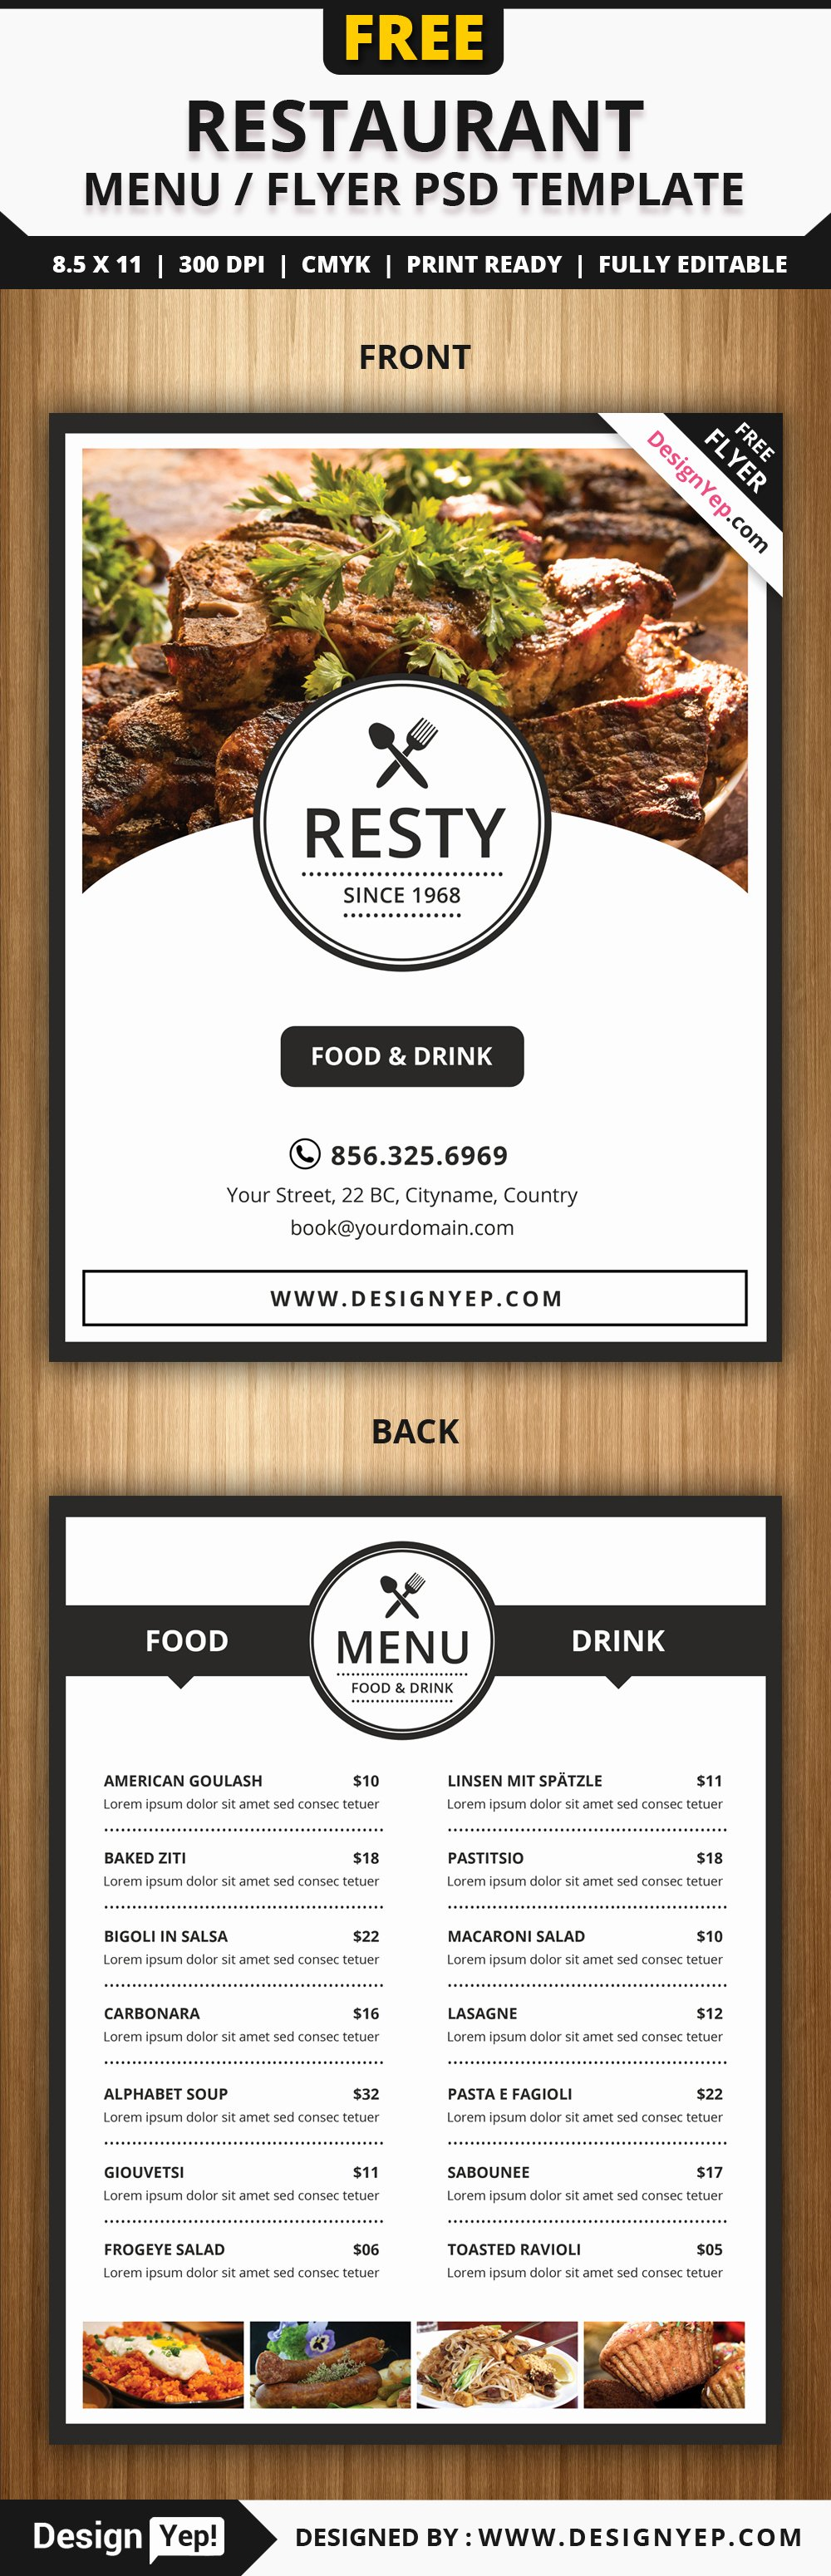 Restaurant Flyer Templates Free Awesome Free Restaurant Menu Flyer Psd Template Designyep